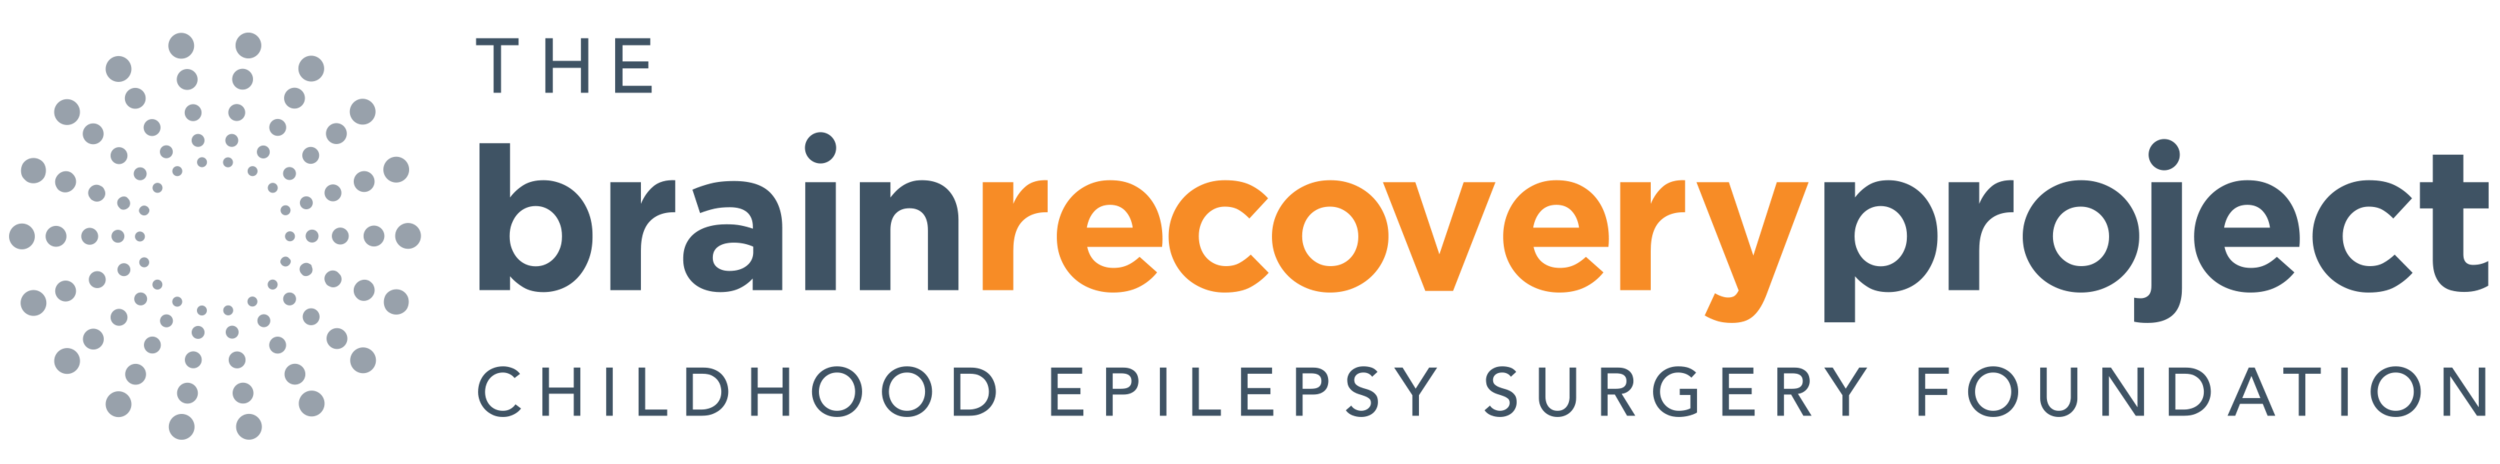 Brain Recovery Project logo.png